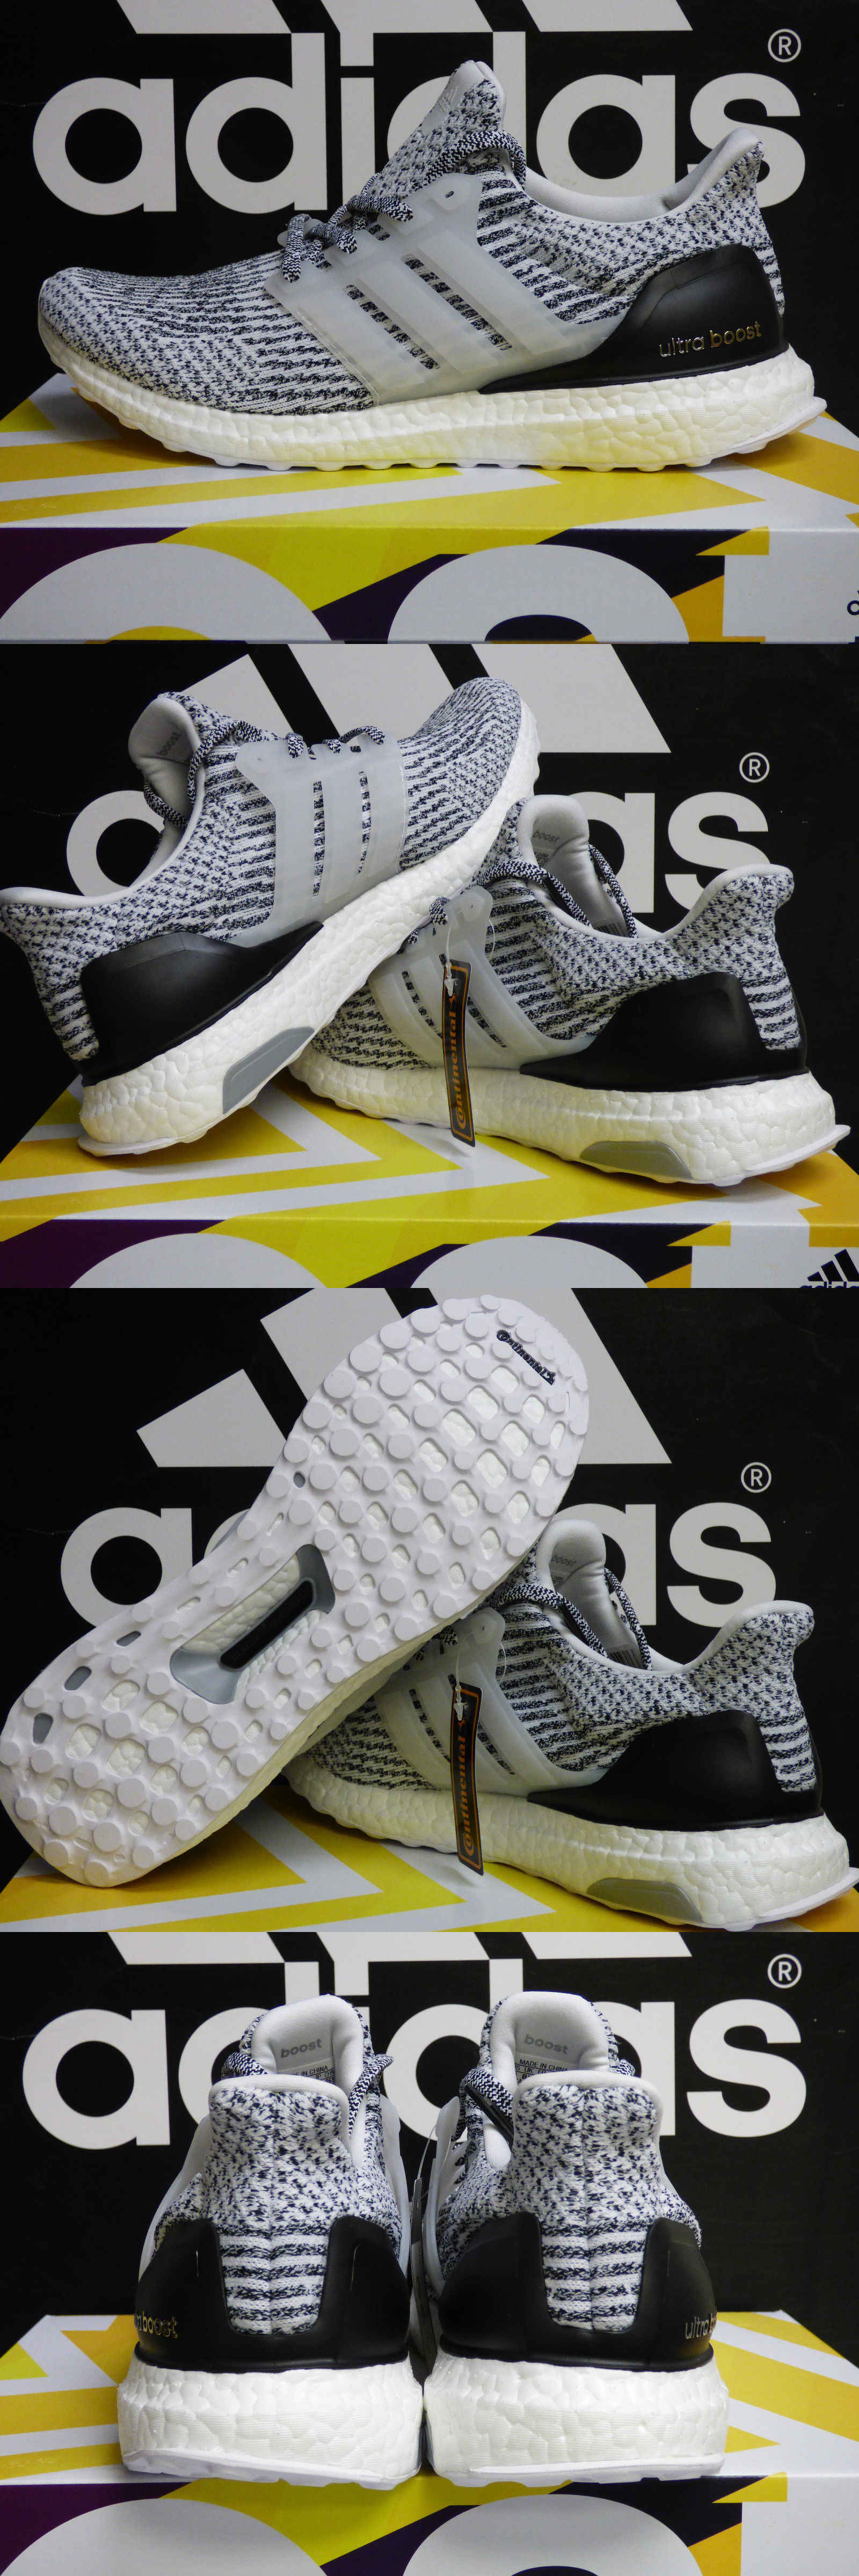 4b89a44c654e4 Men 158952  New Authentic Adidas Ultraboost 3.0 Running Shoes Oreo White  Size 9 Us S80636